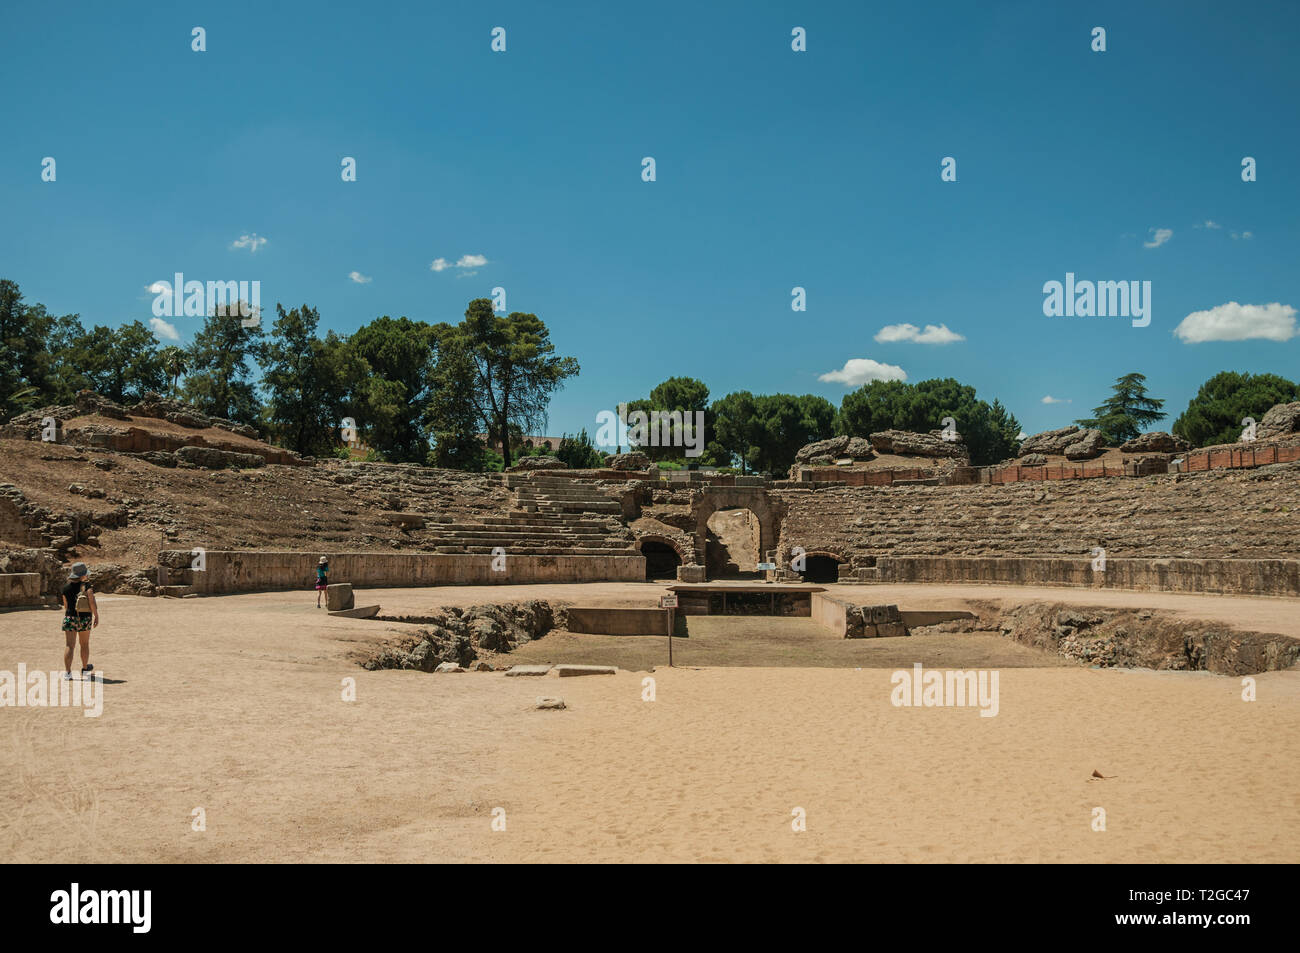 People walking around the arena of Roman Amphitheater in a sunny day at Merida. The city preserves many buildings of ancient Rome in Spain. - Stock Image